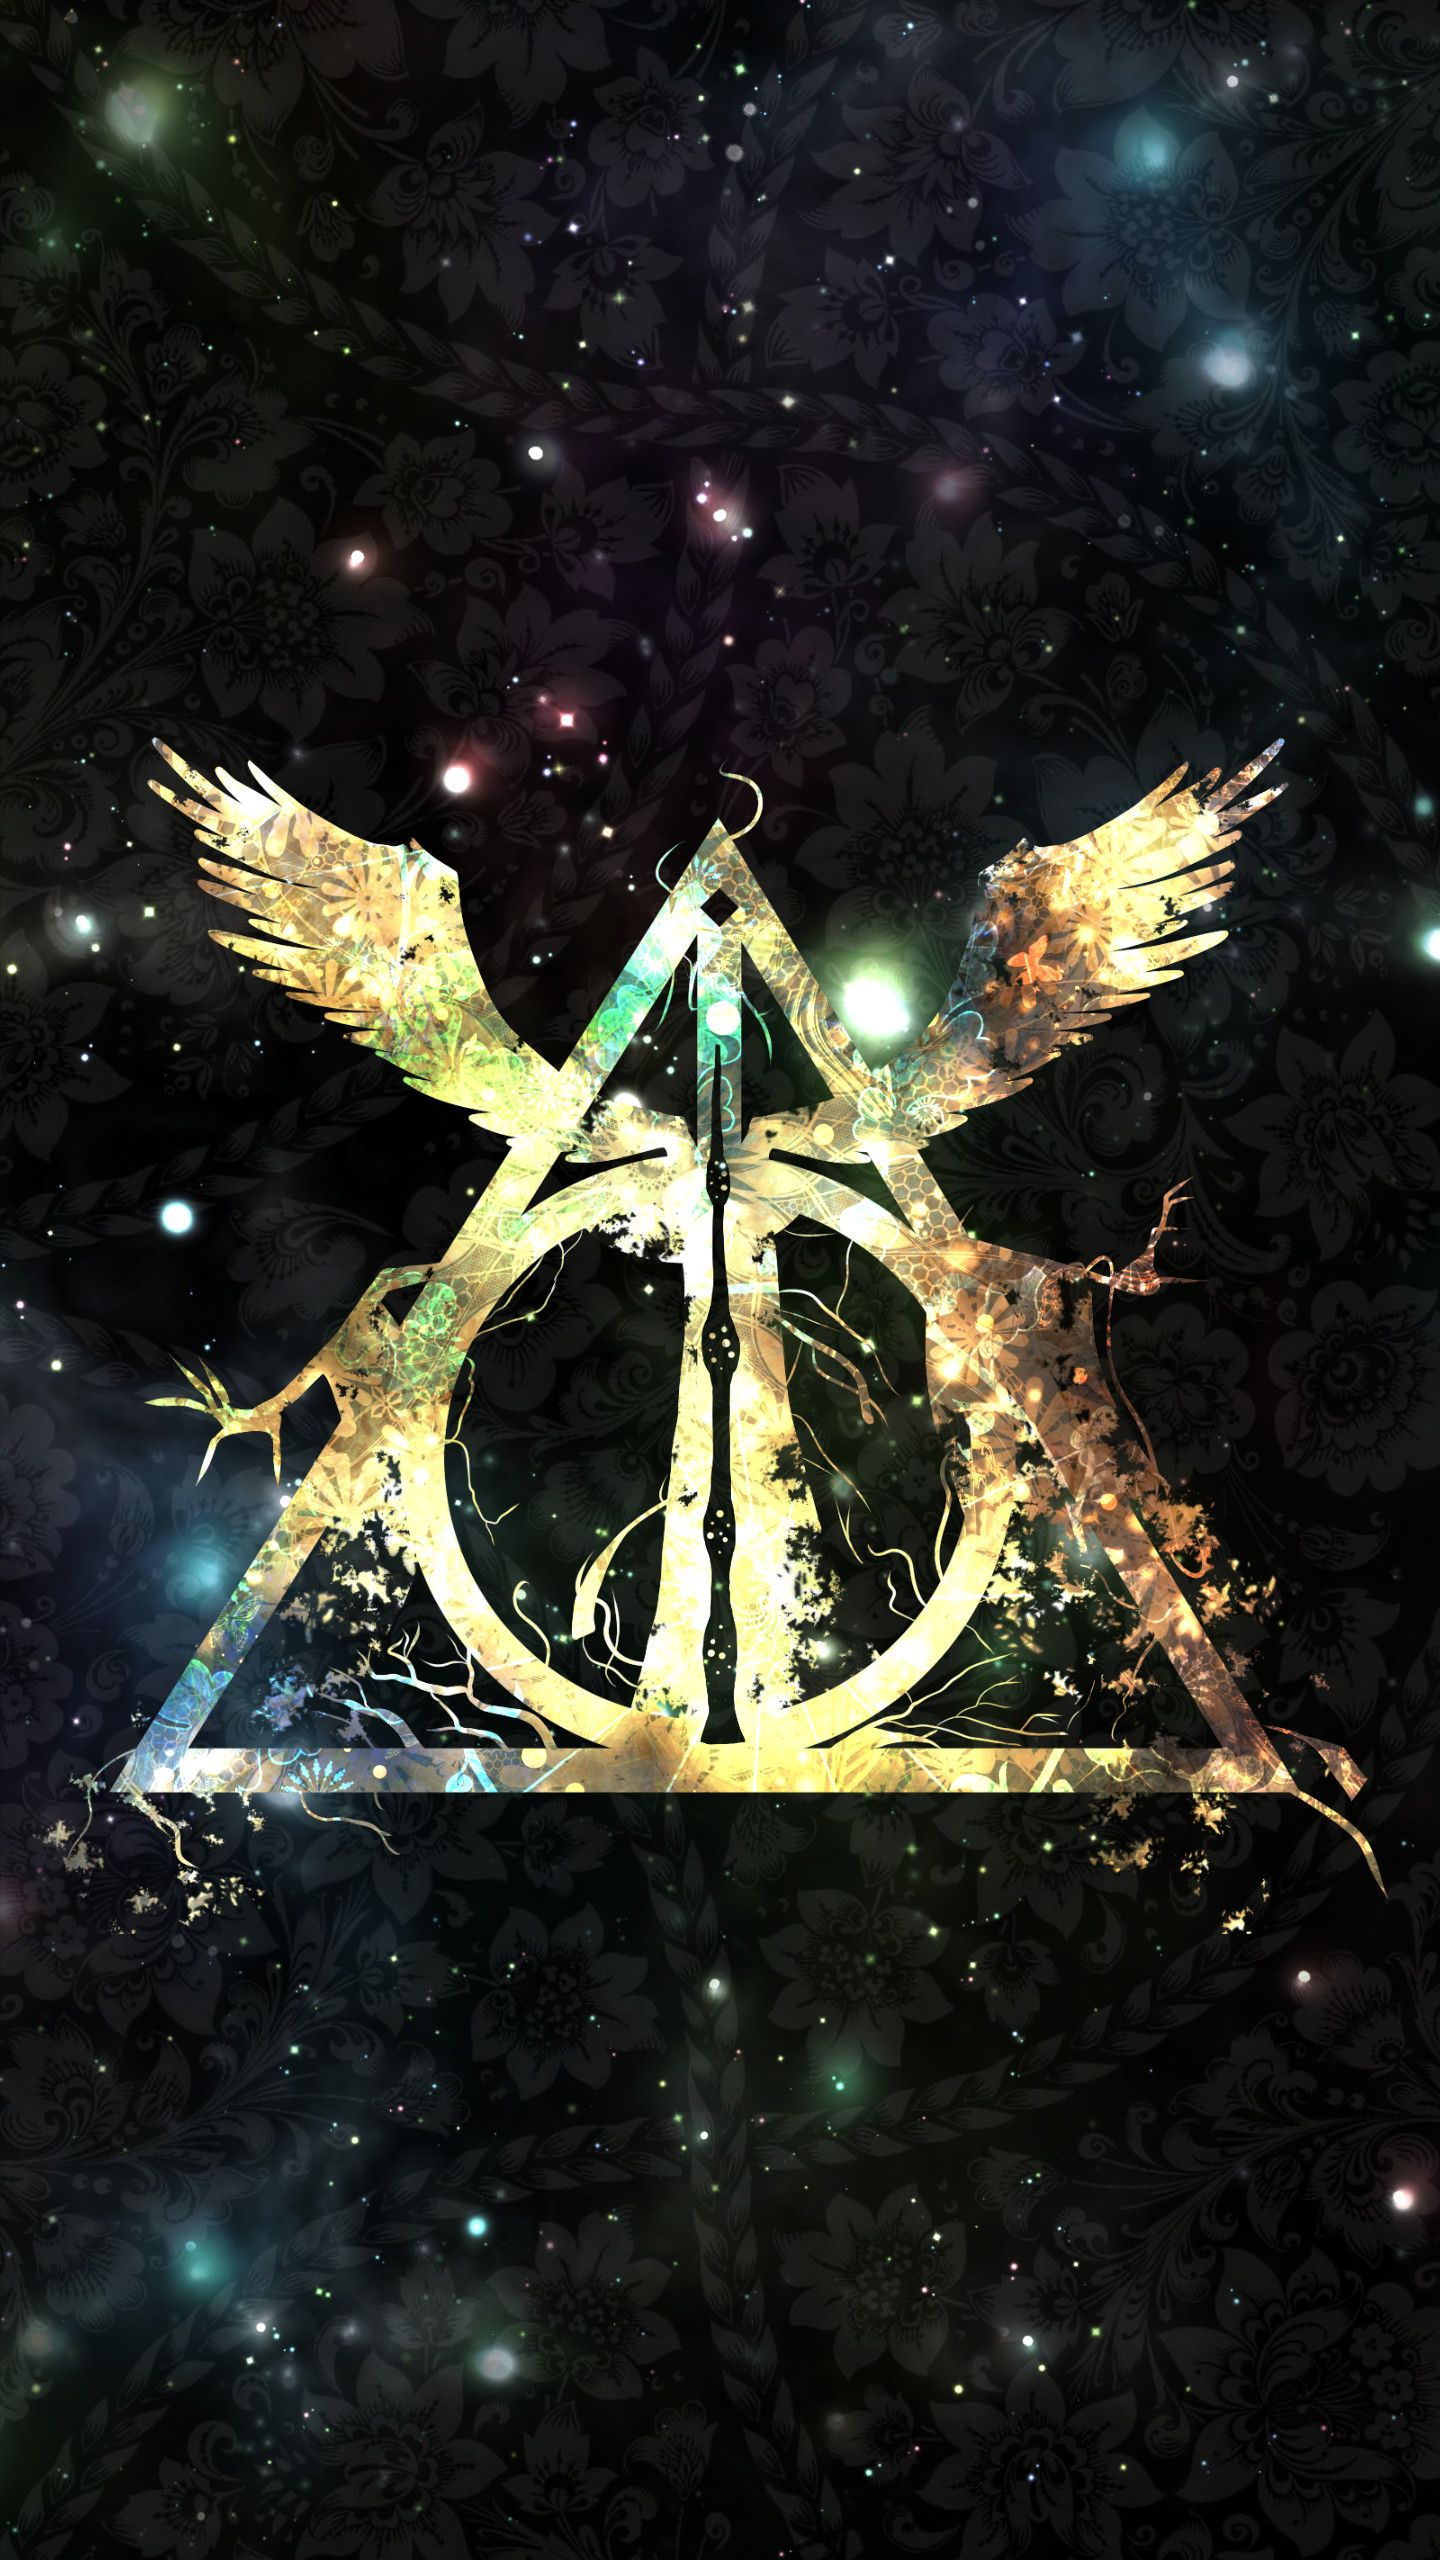 Res 1440x2560 Harry Potter And The Deathly Hallows Symbol Wallpaper Wide Harry Potter Iphone Wallpaper Harry Potter Background Harry Potter Wallpaper